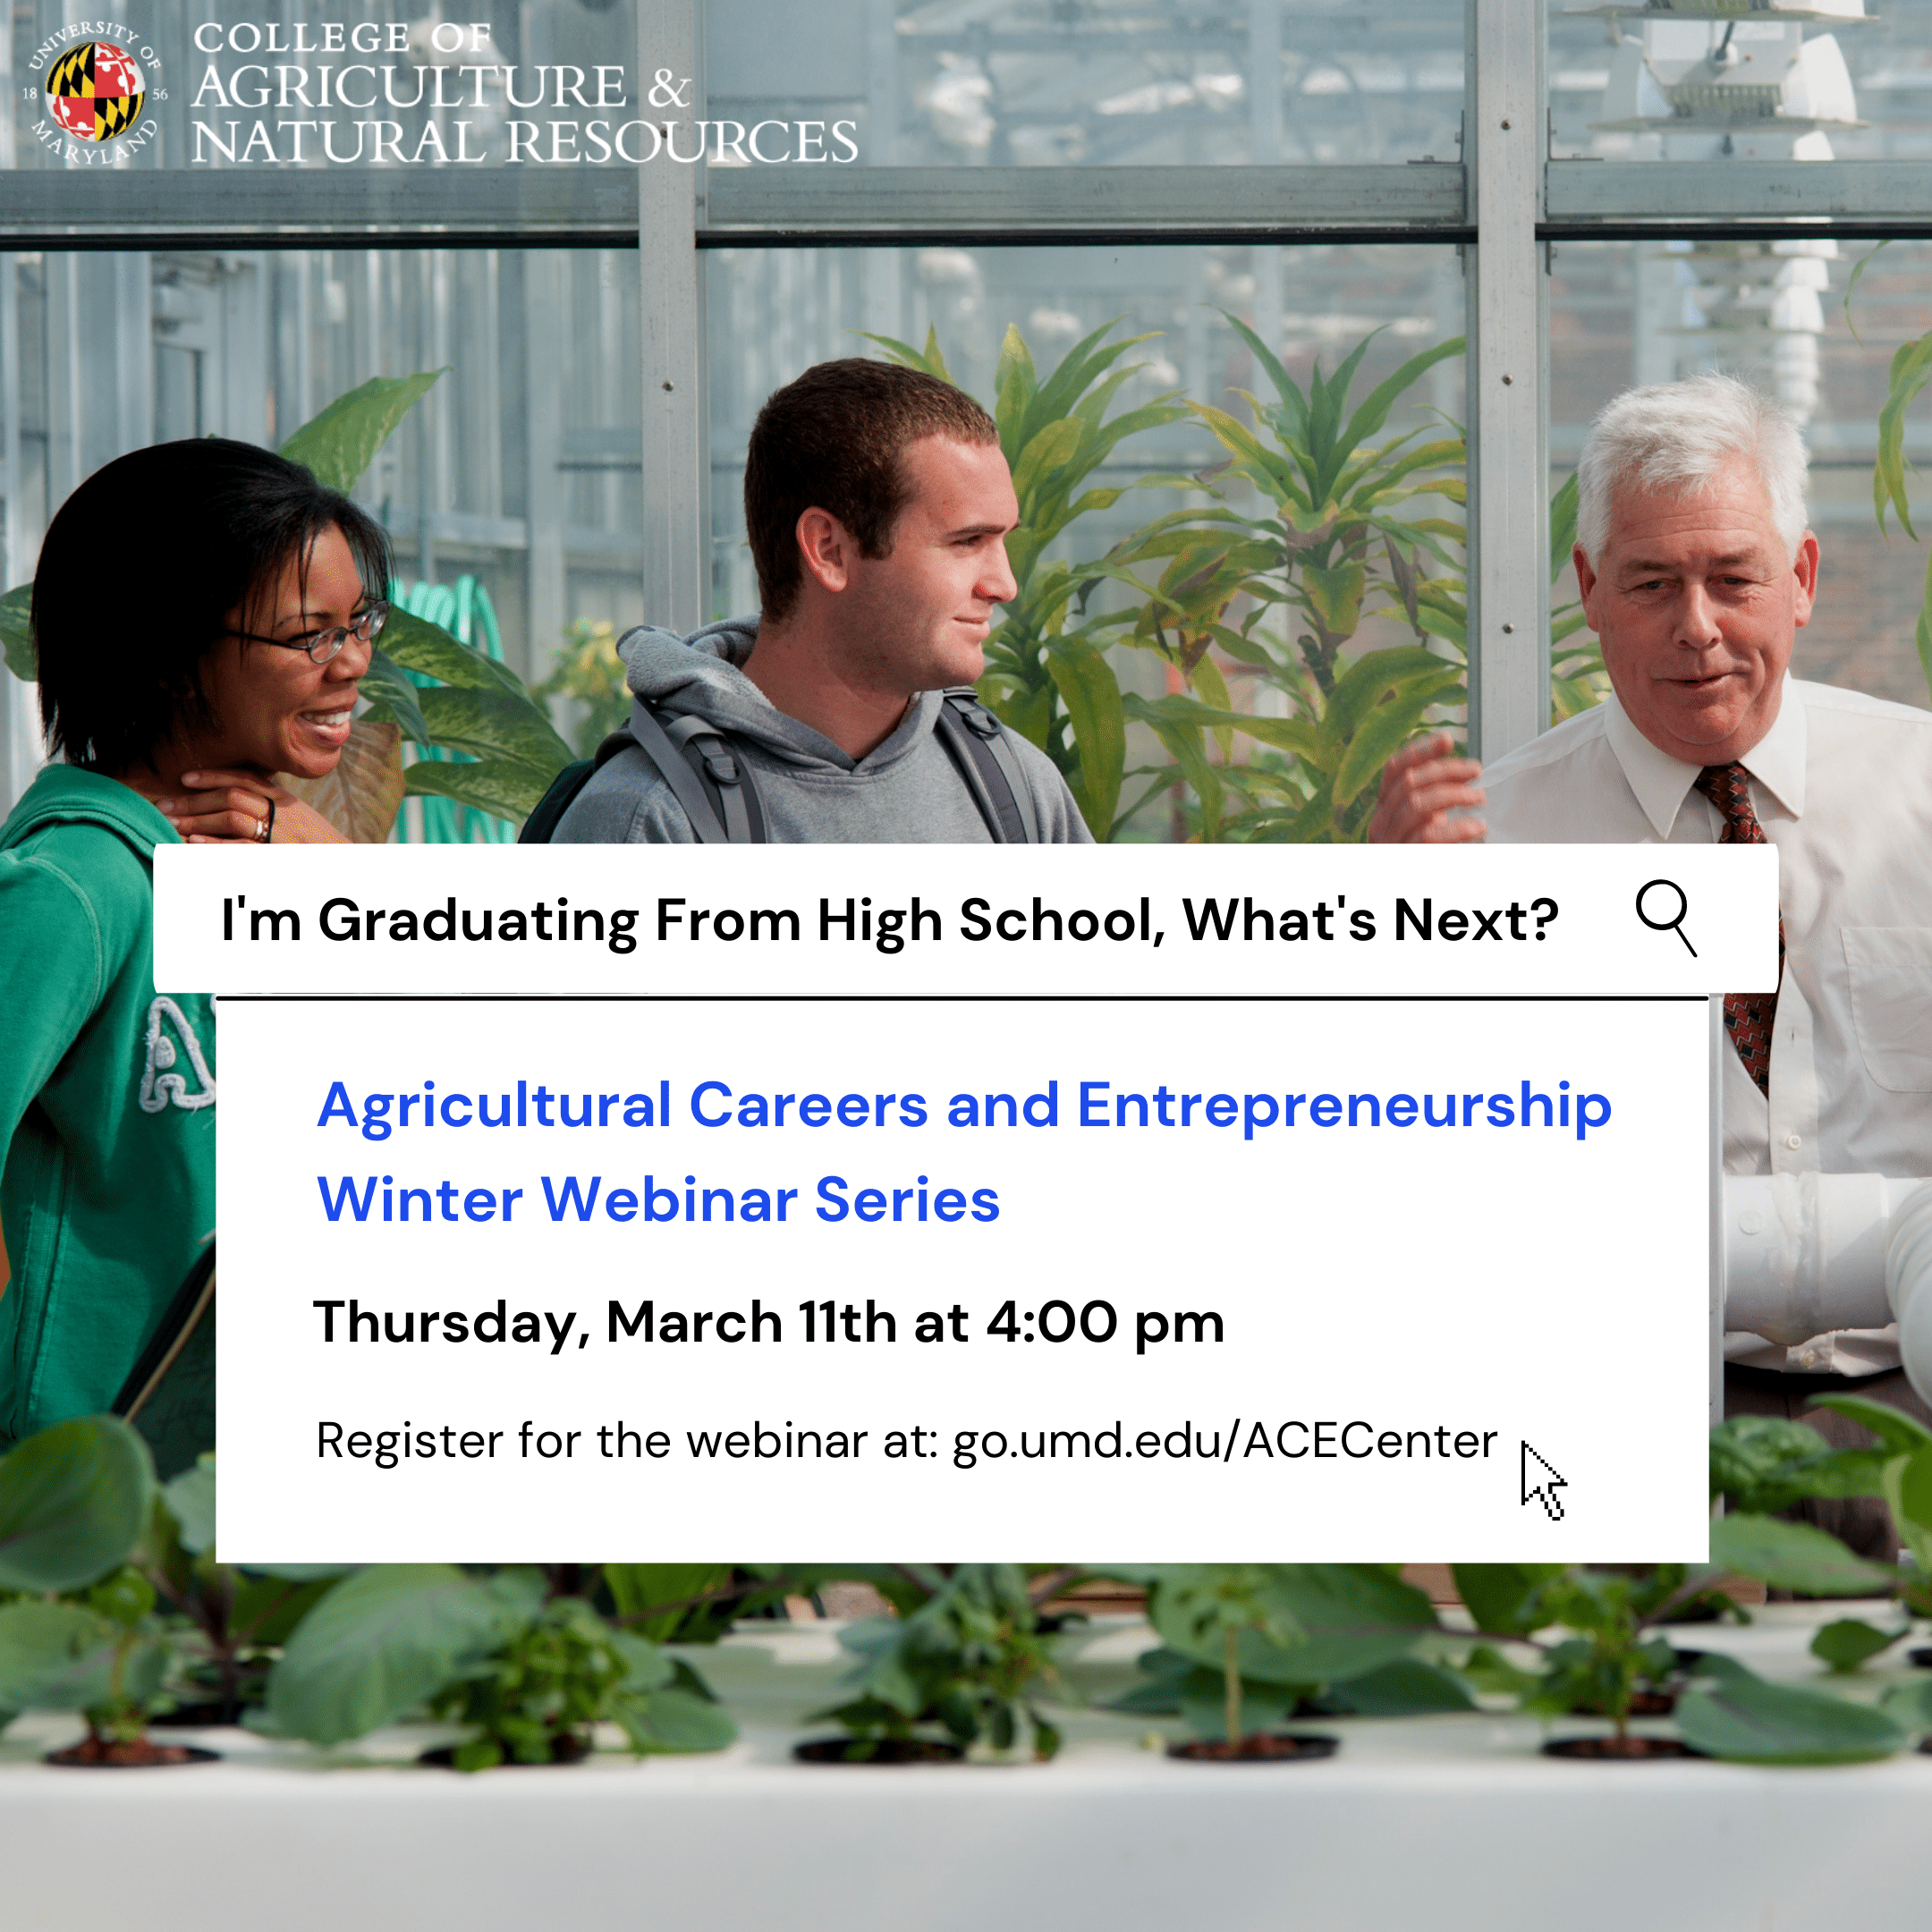 I'm Graduating from high school, what's next? Agricultural Careers and Entrepreneurship webinar flyer for event on Thursday March 11th at 4:00 pm. Register at the Ace center website.